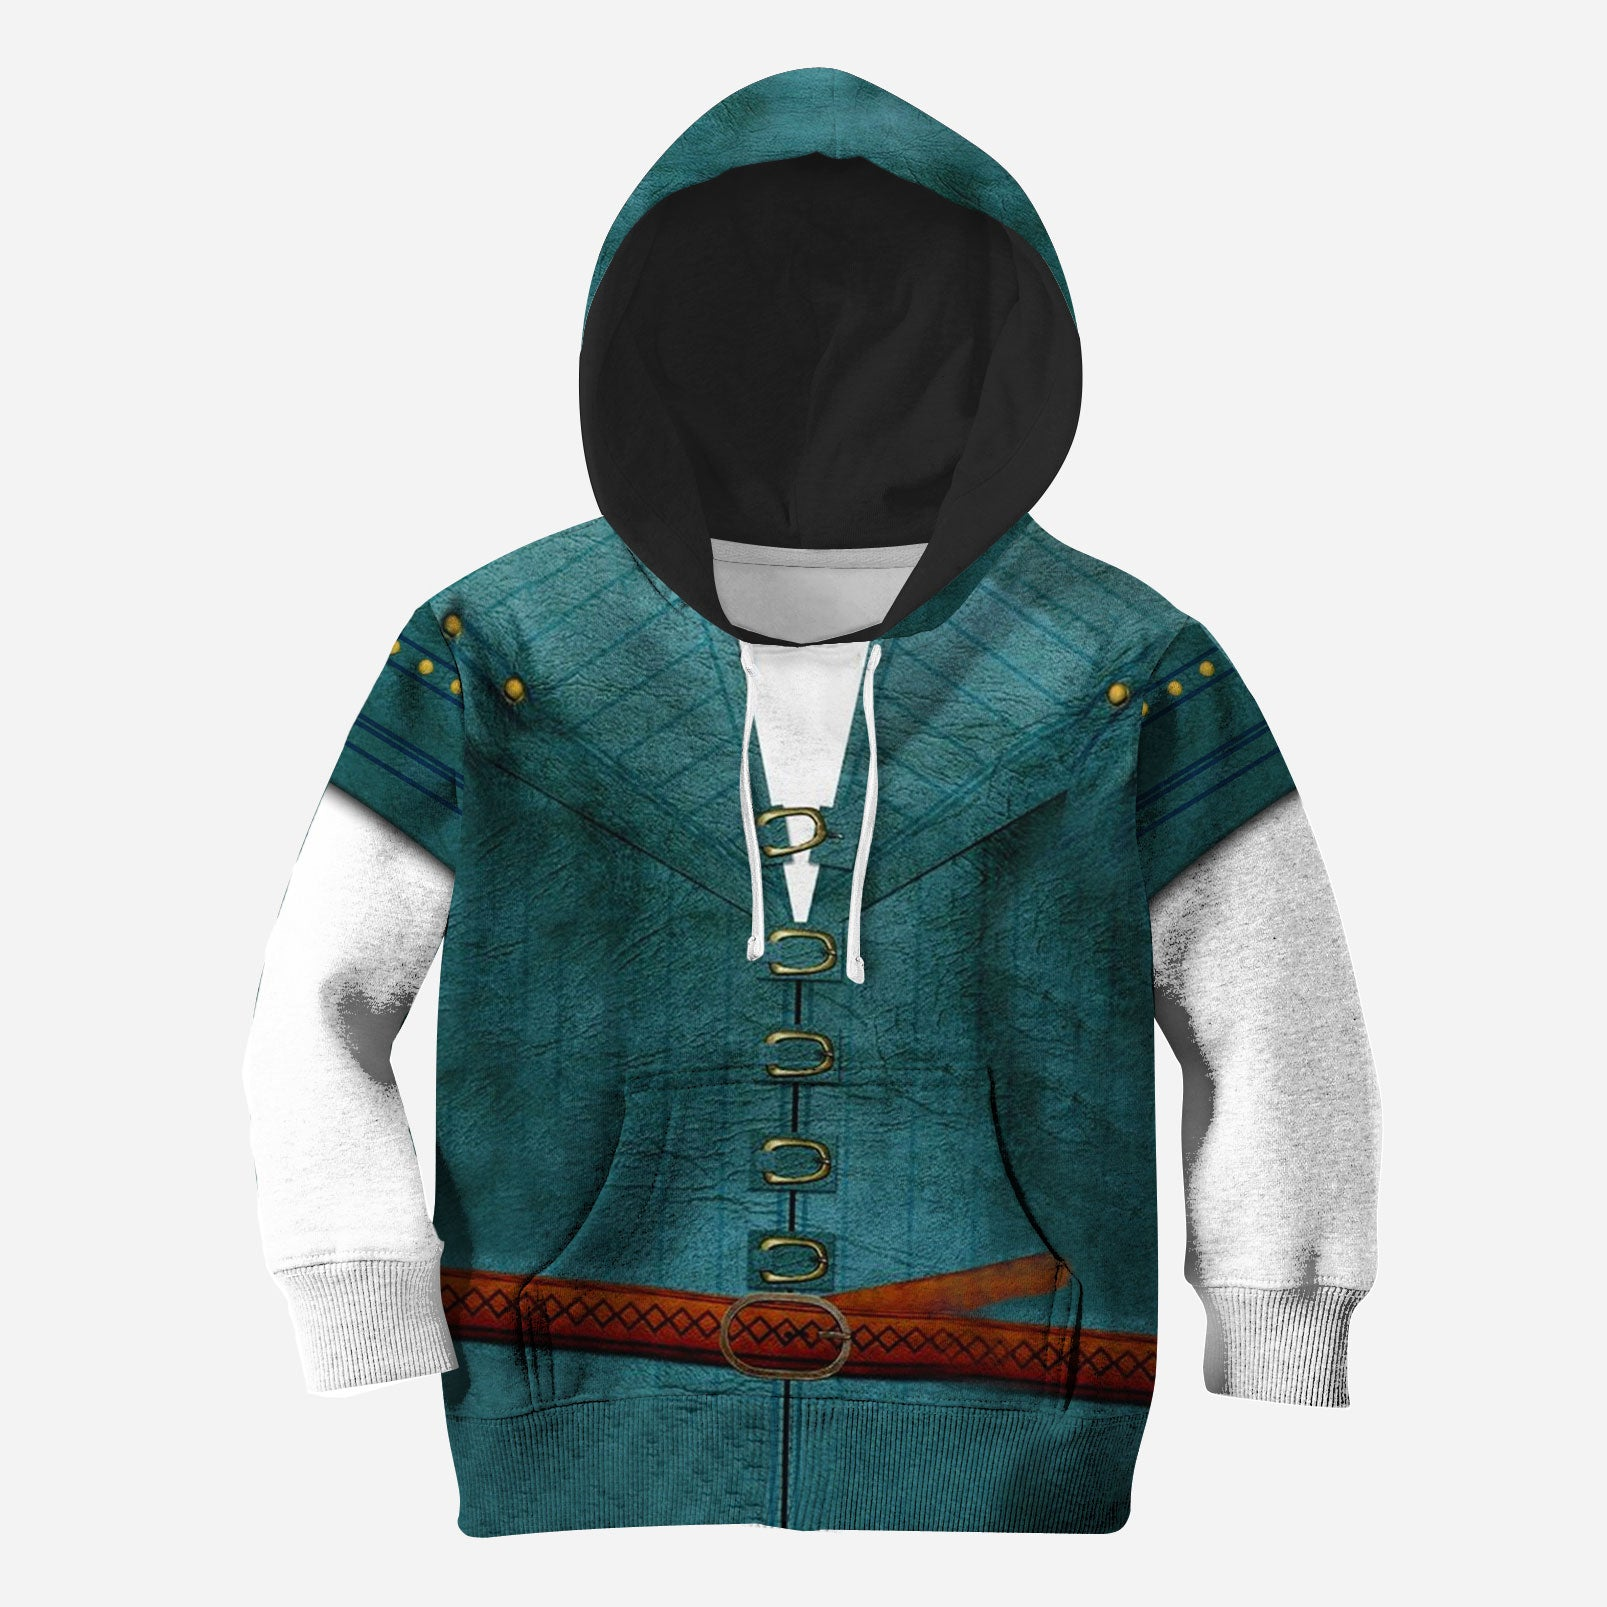 Flynn Rider 3D All Over Printed Shirts For Kids